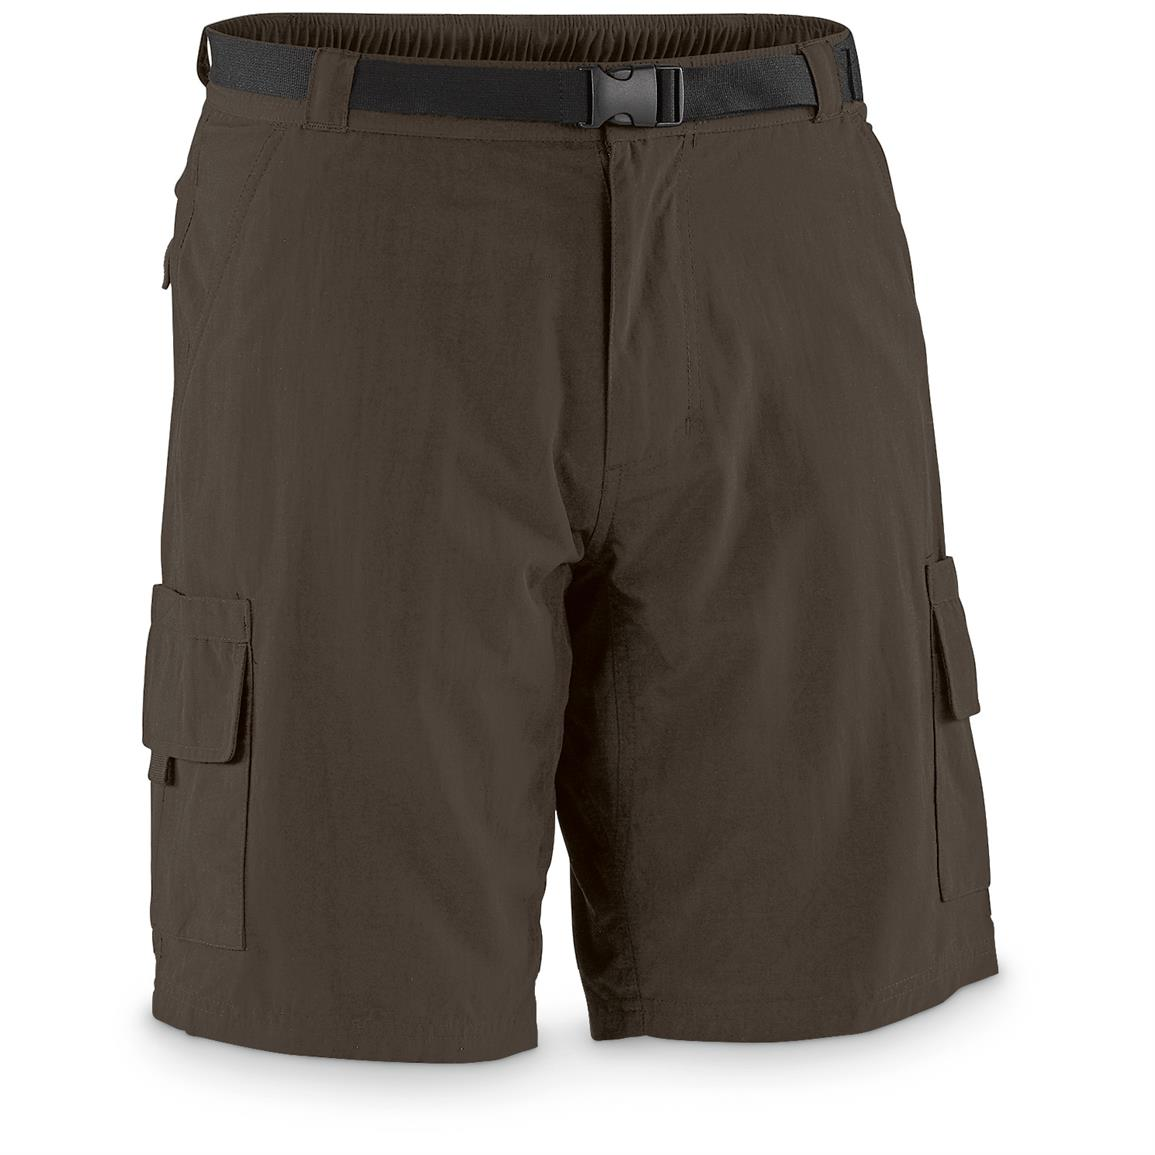 "Guide Gear Men's Cargo River Shorts, 10"" Inseam, Bark"